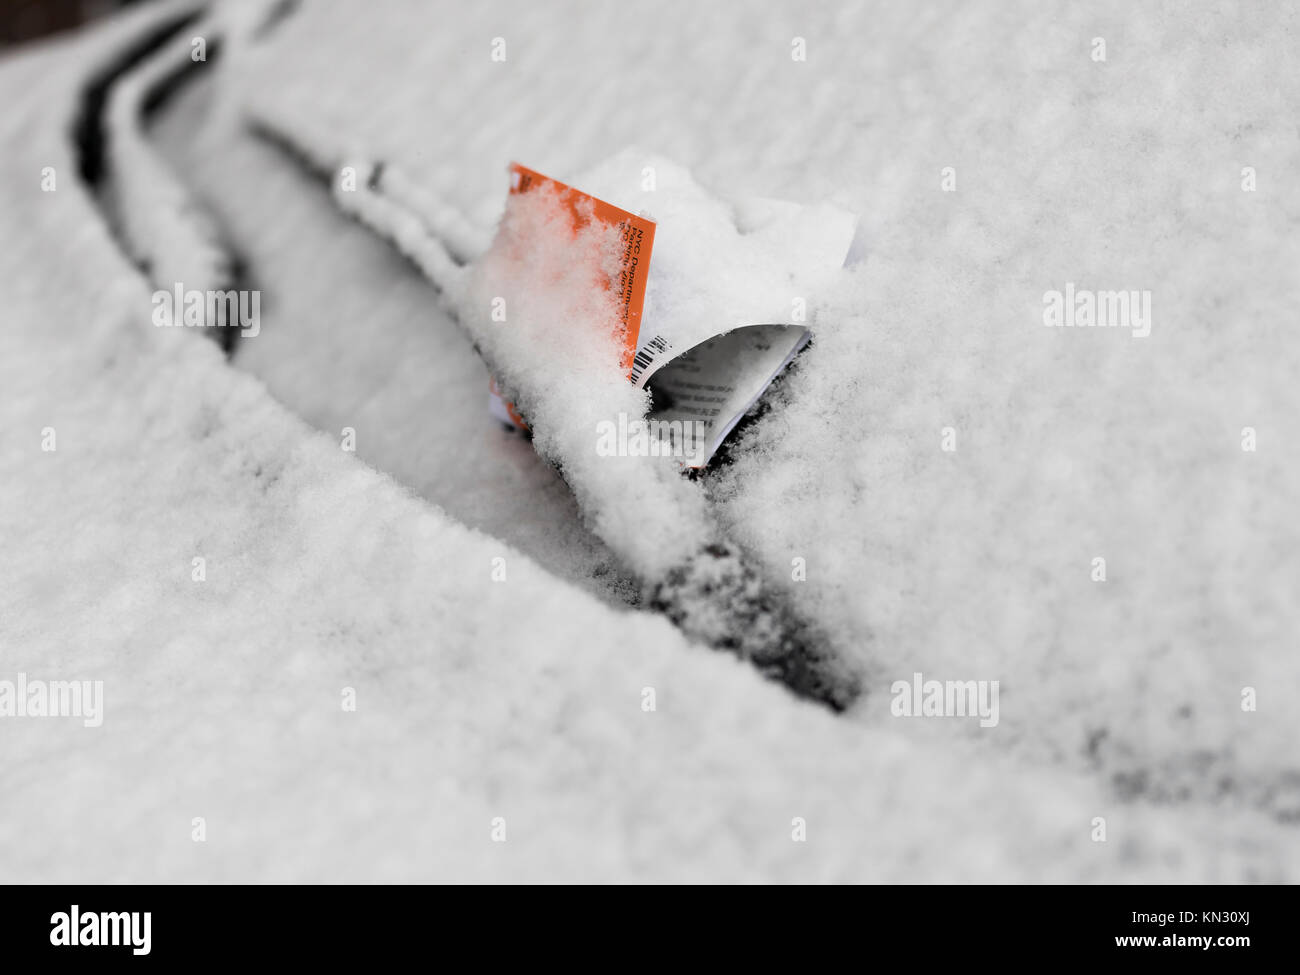 Parking violation ticket on snow covered car windshield - Stock Image